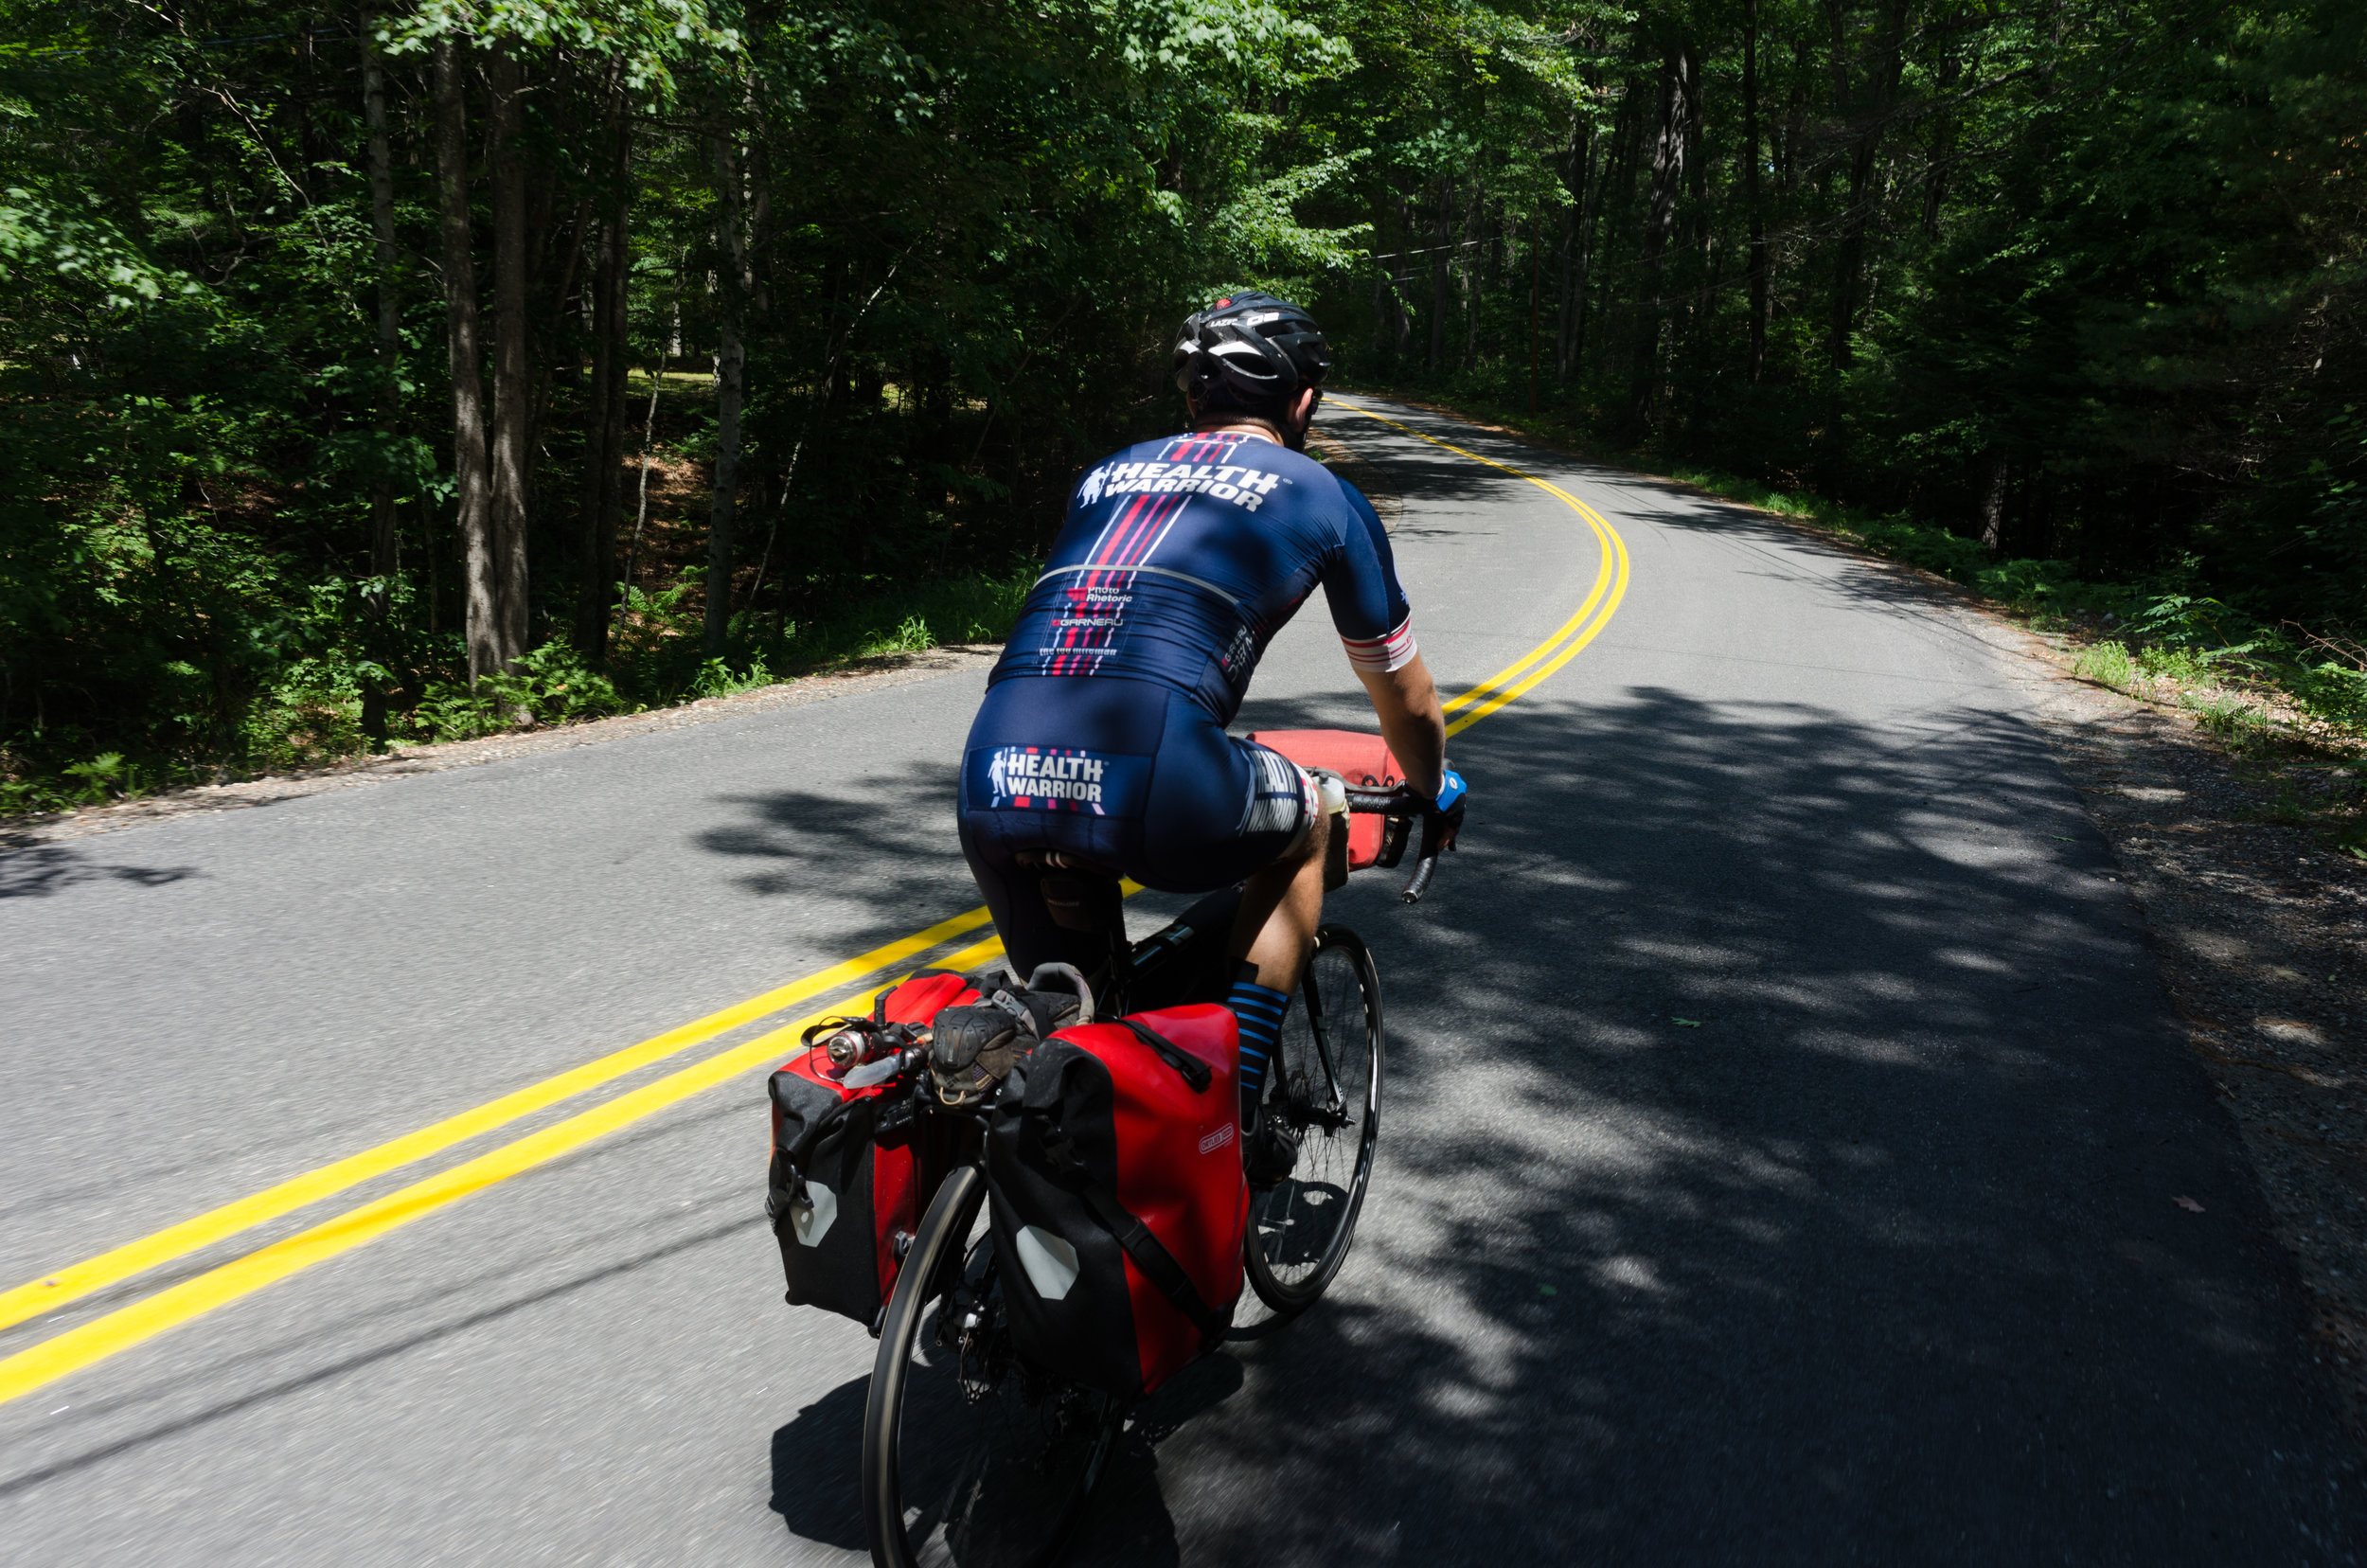 This forced us onto roads - extending our 80-90 mile days into 100+ mile days with much more climbing than our original route featured.